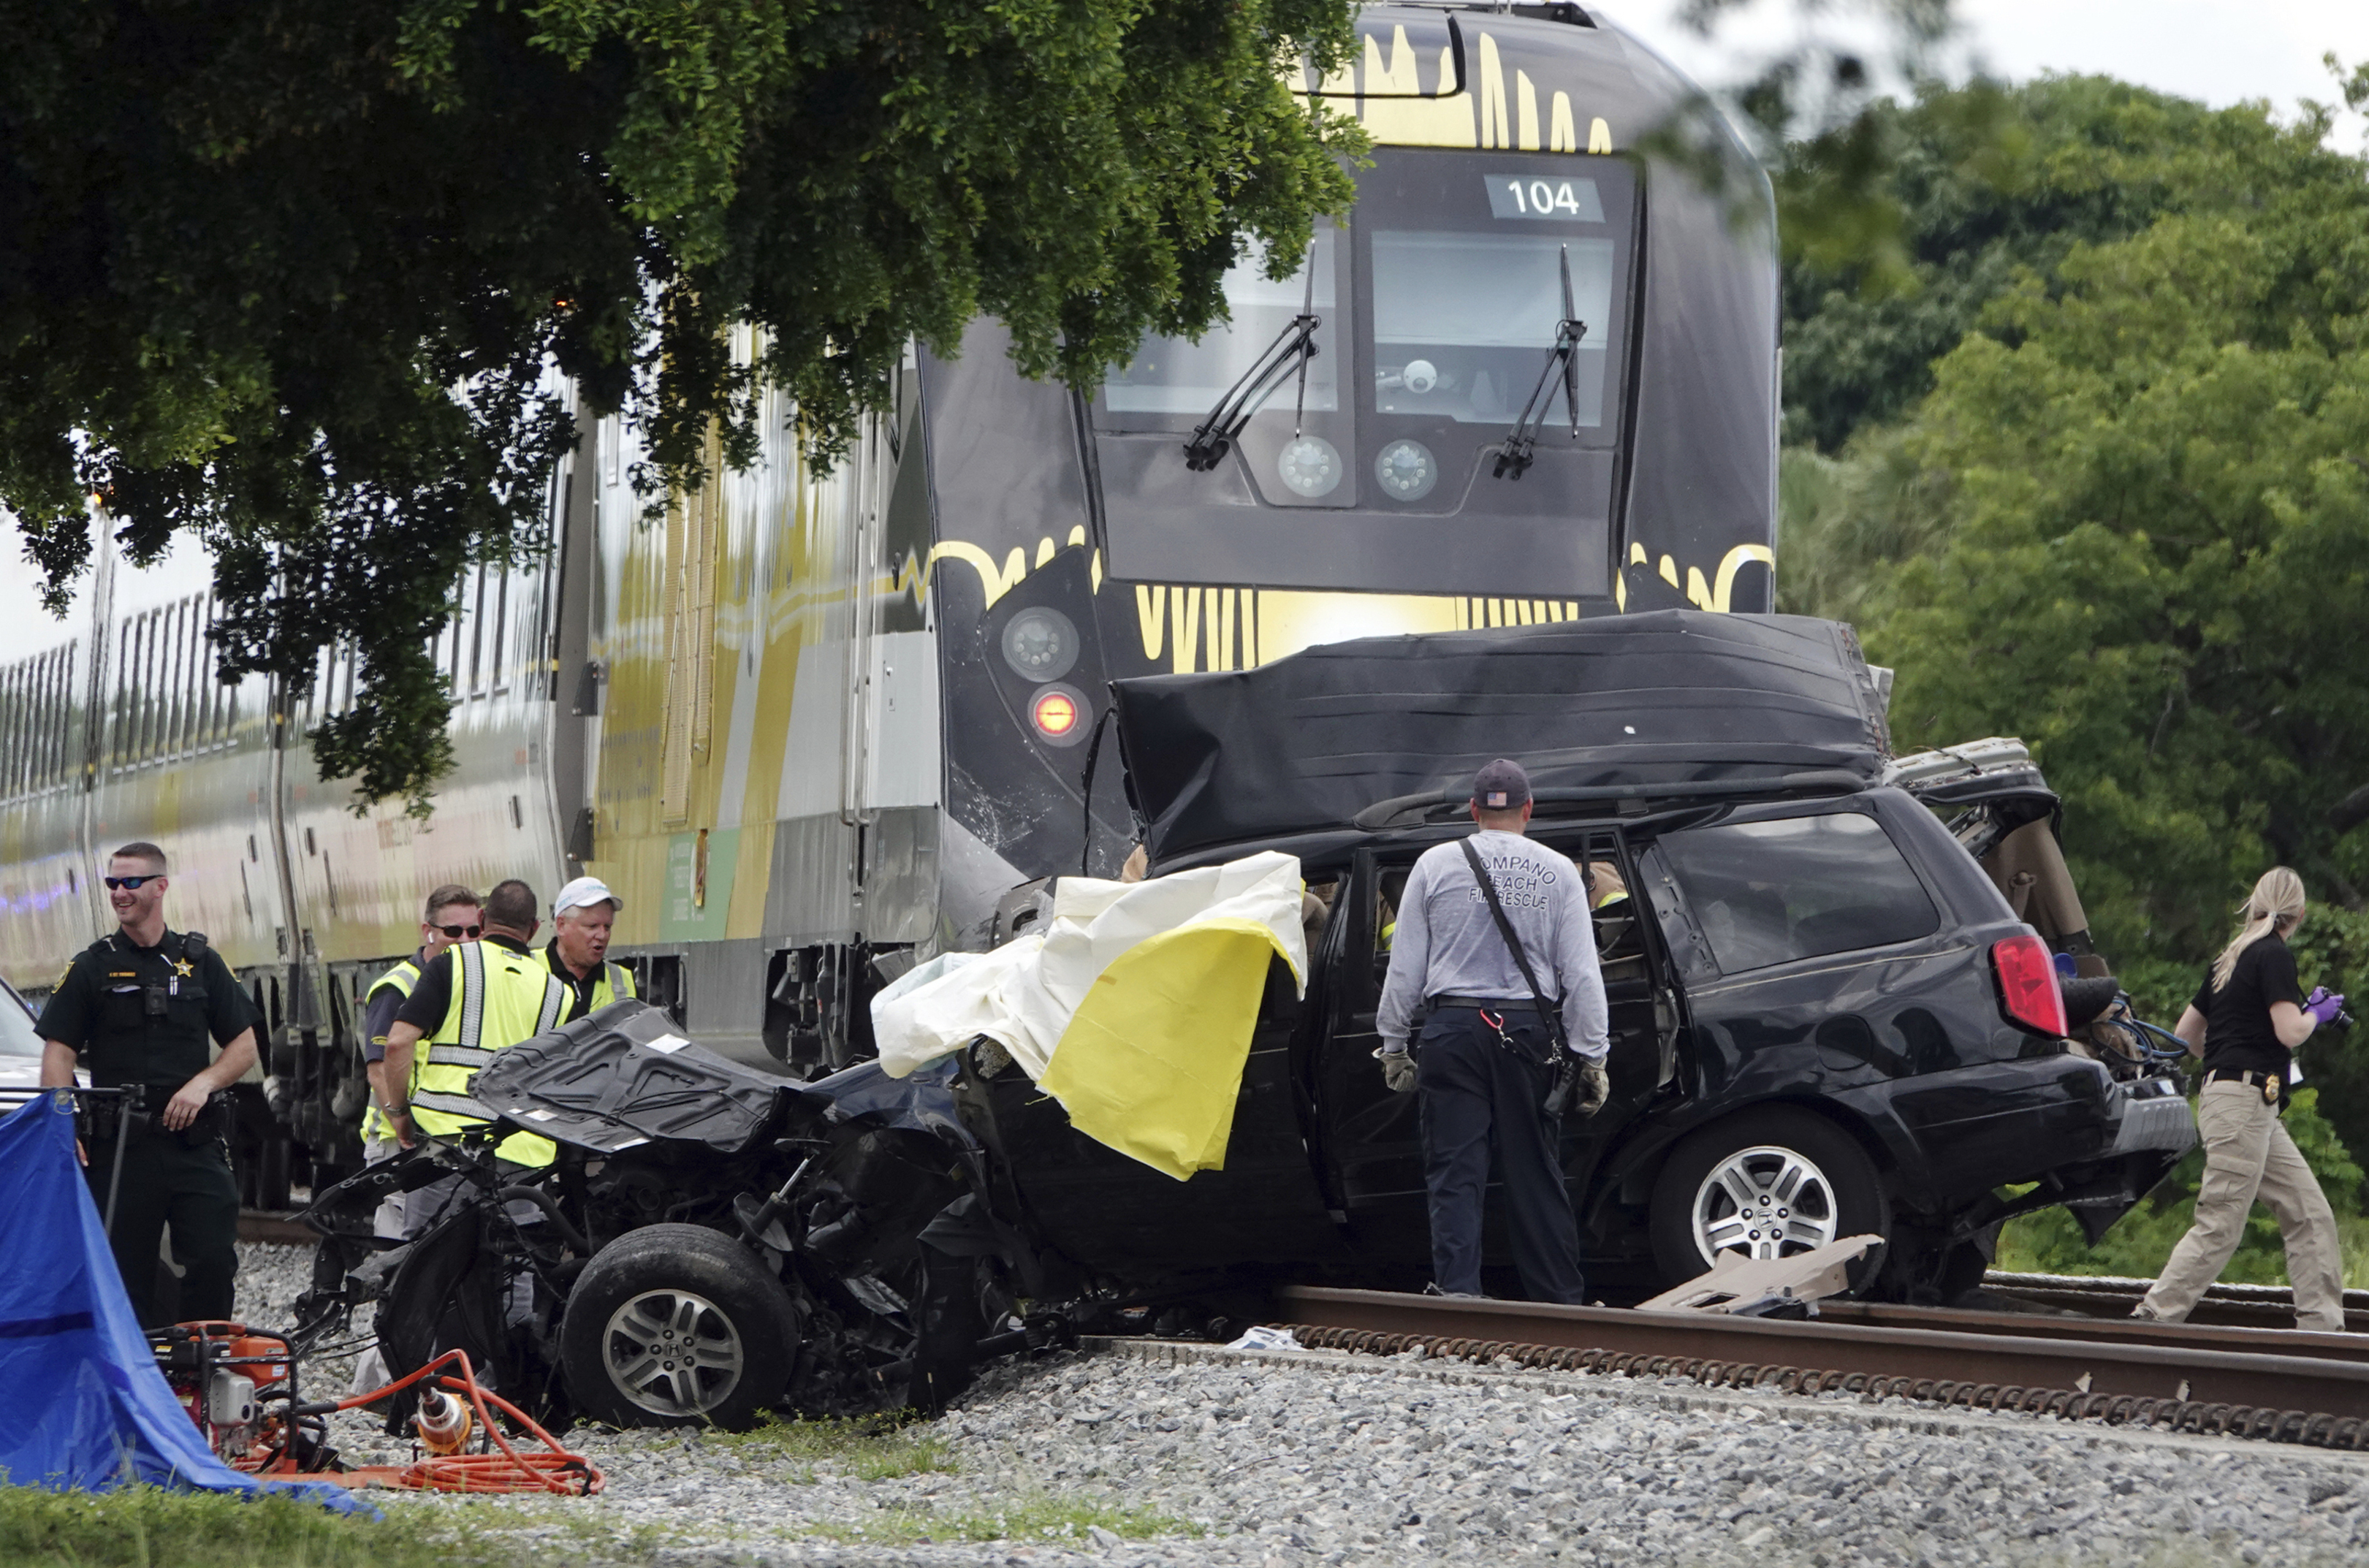 Richard Branson's Florida train kills more per mile than any other in US